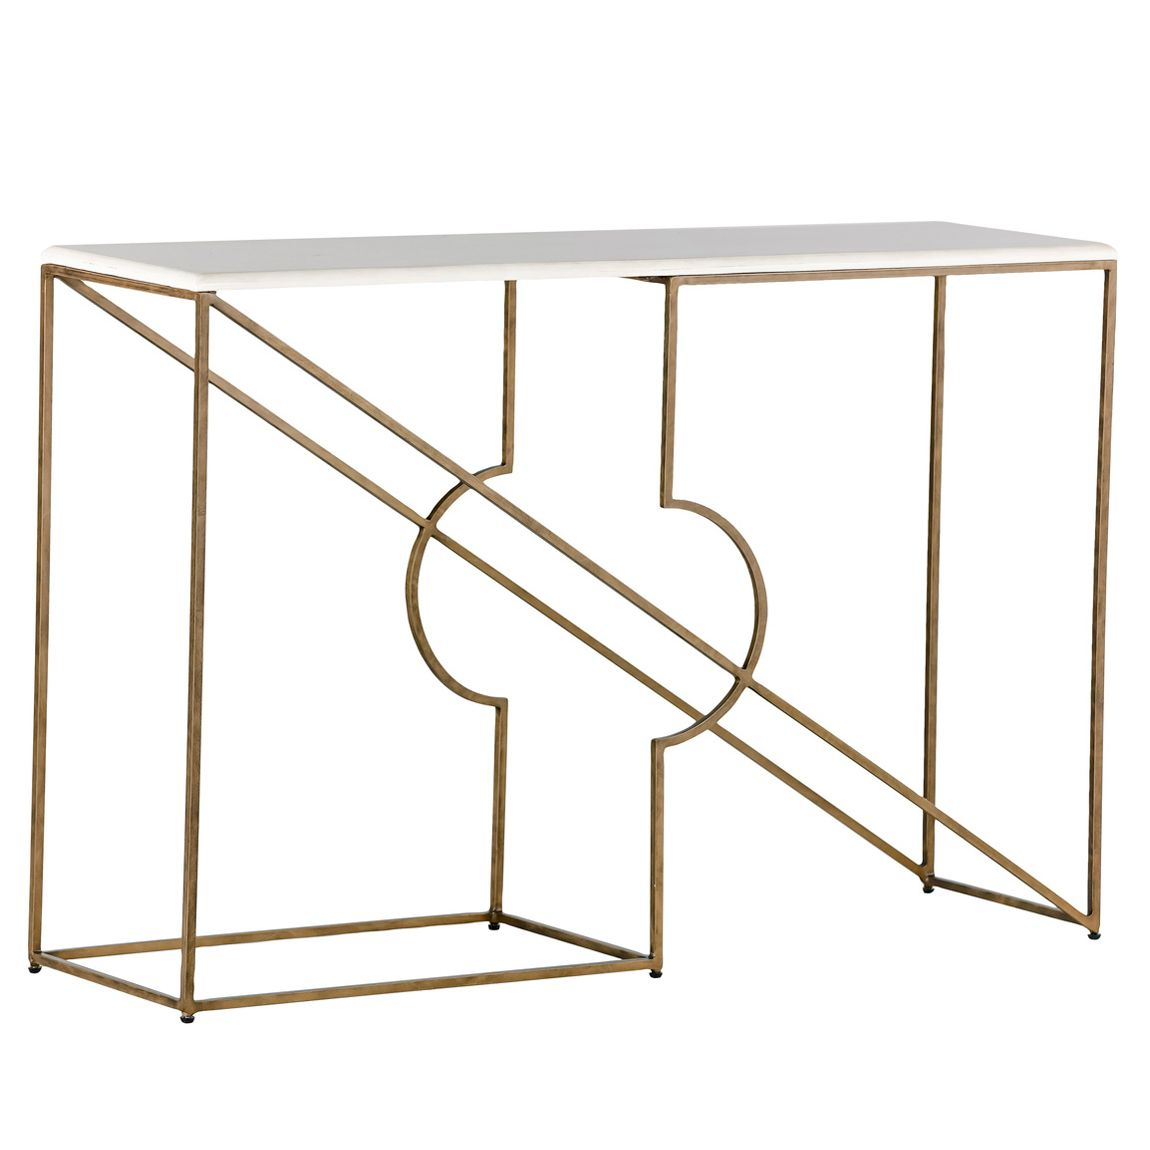 Gabby Furniture Galileo Console Table #laylagrayce | Laylagrayce throughout Ventana Display Console Tables (Image 13 of 30)